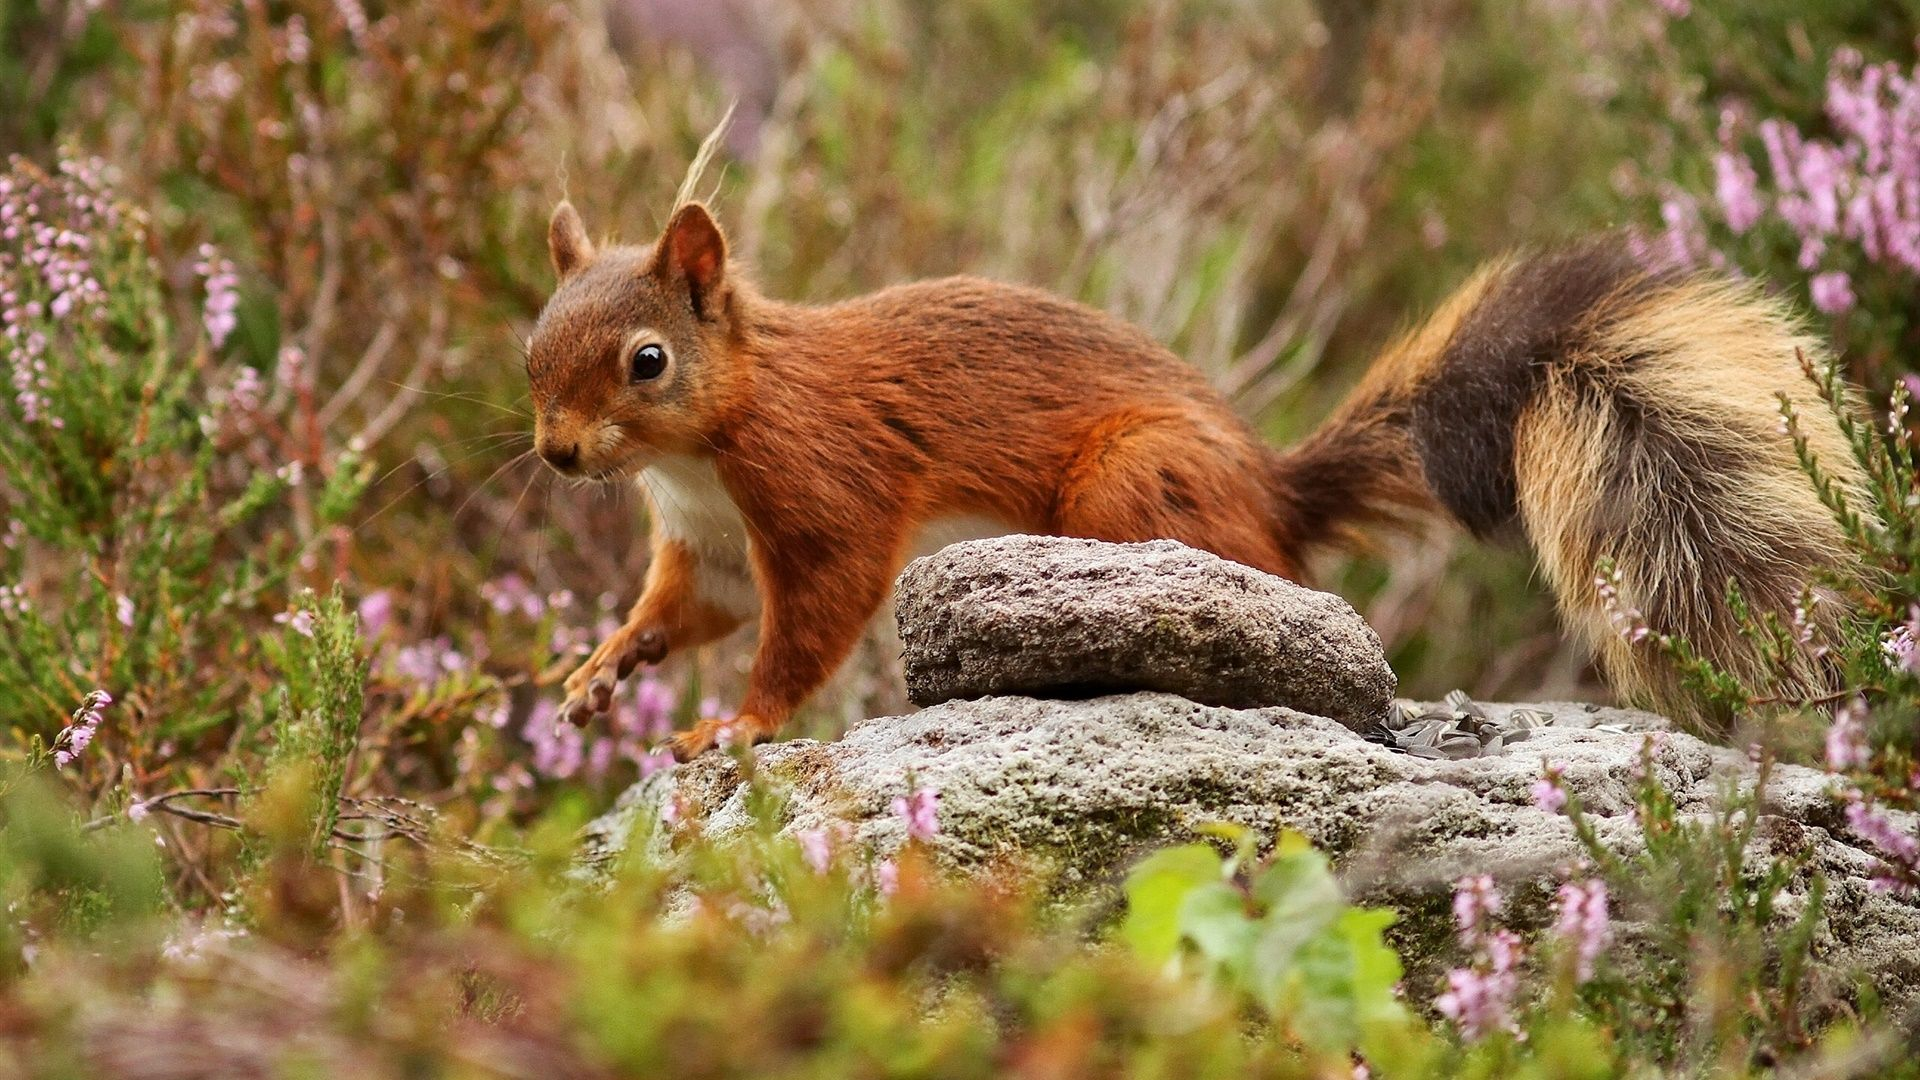 Photos Of Squirrels In The Woods